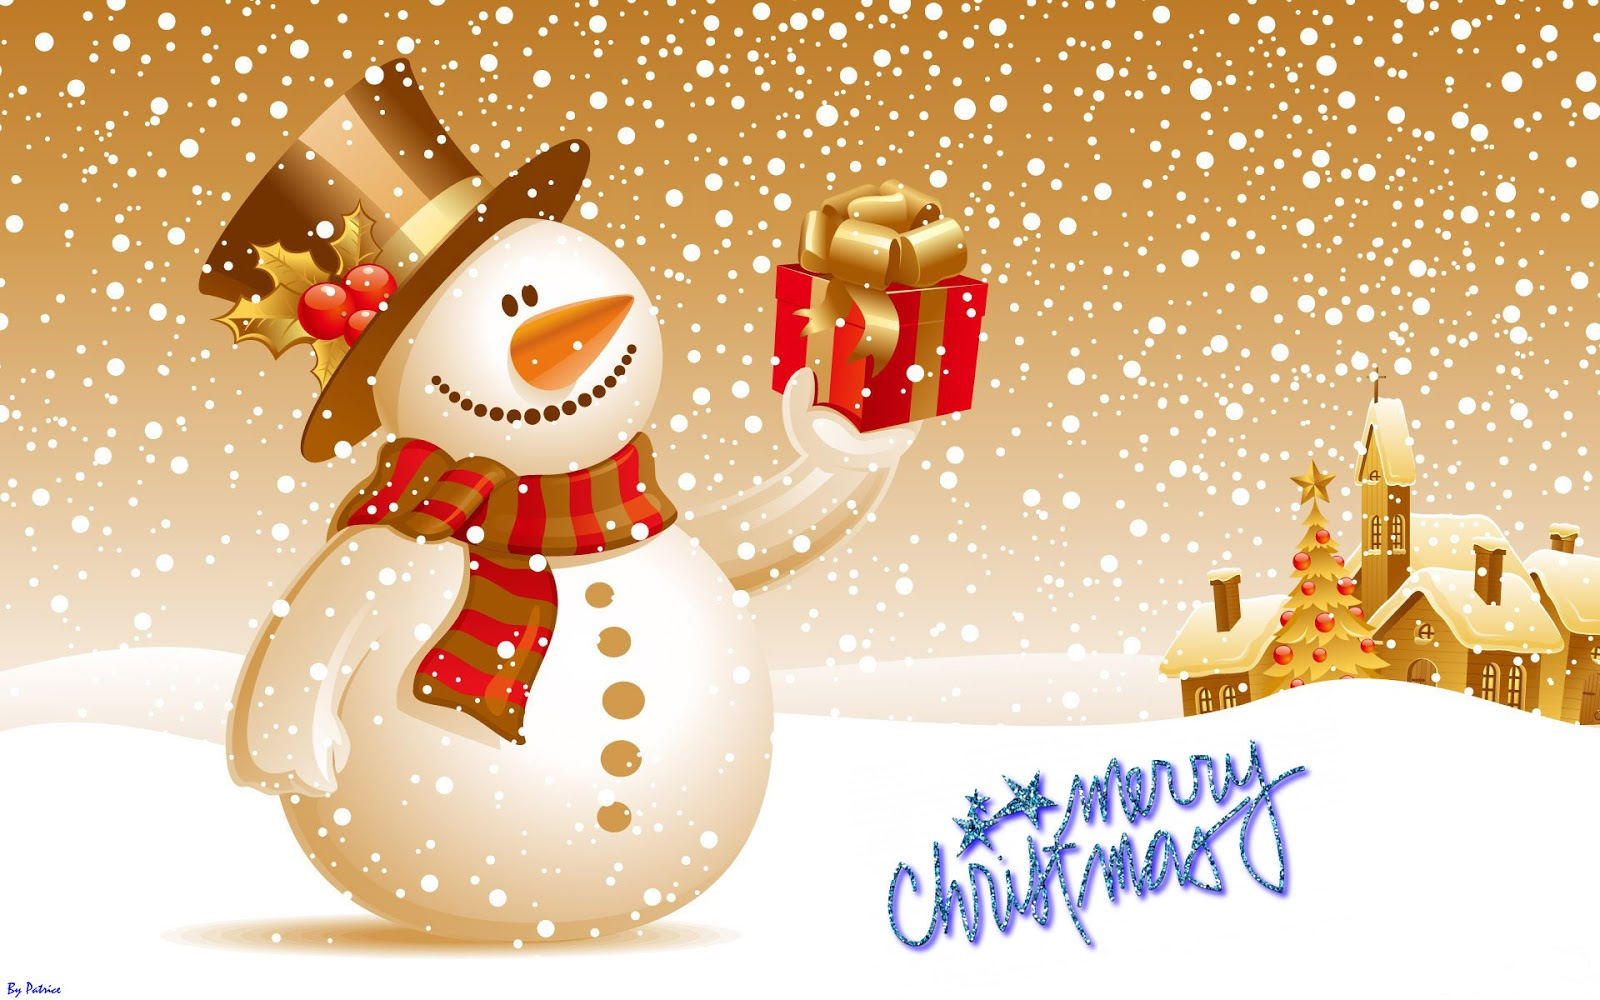 Muslims-and-Merry-Christmas-Wishes-free-hd-wallpapers-for-desktop